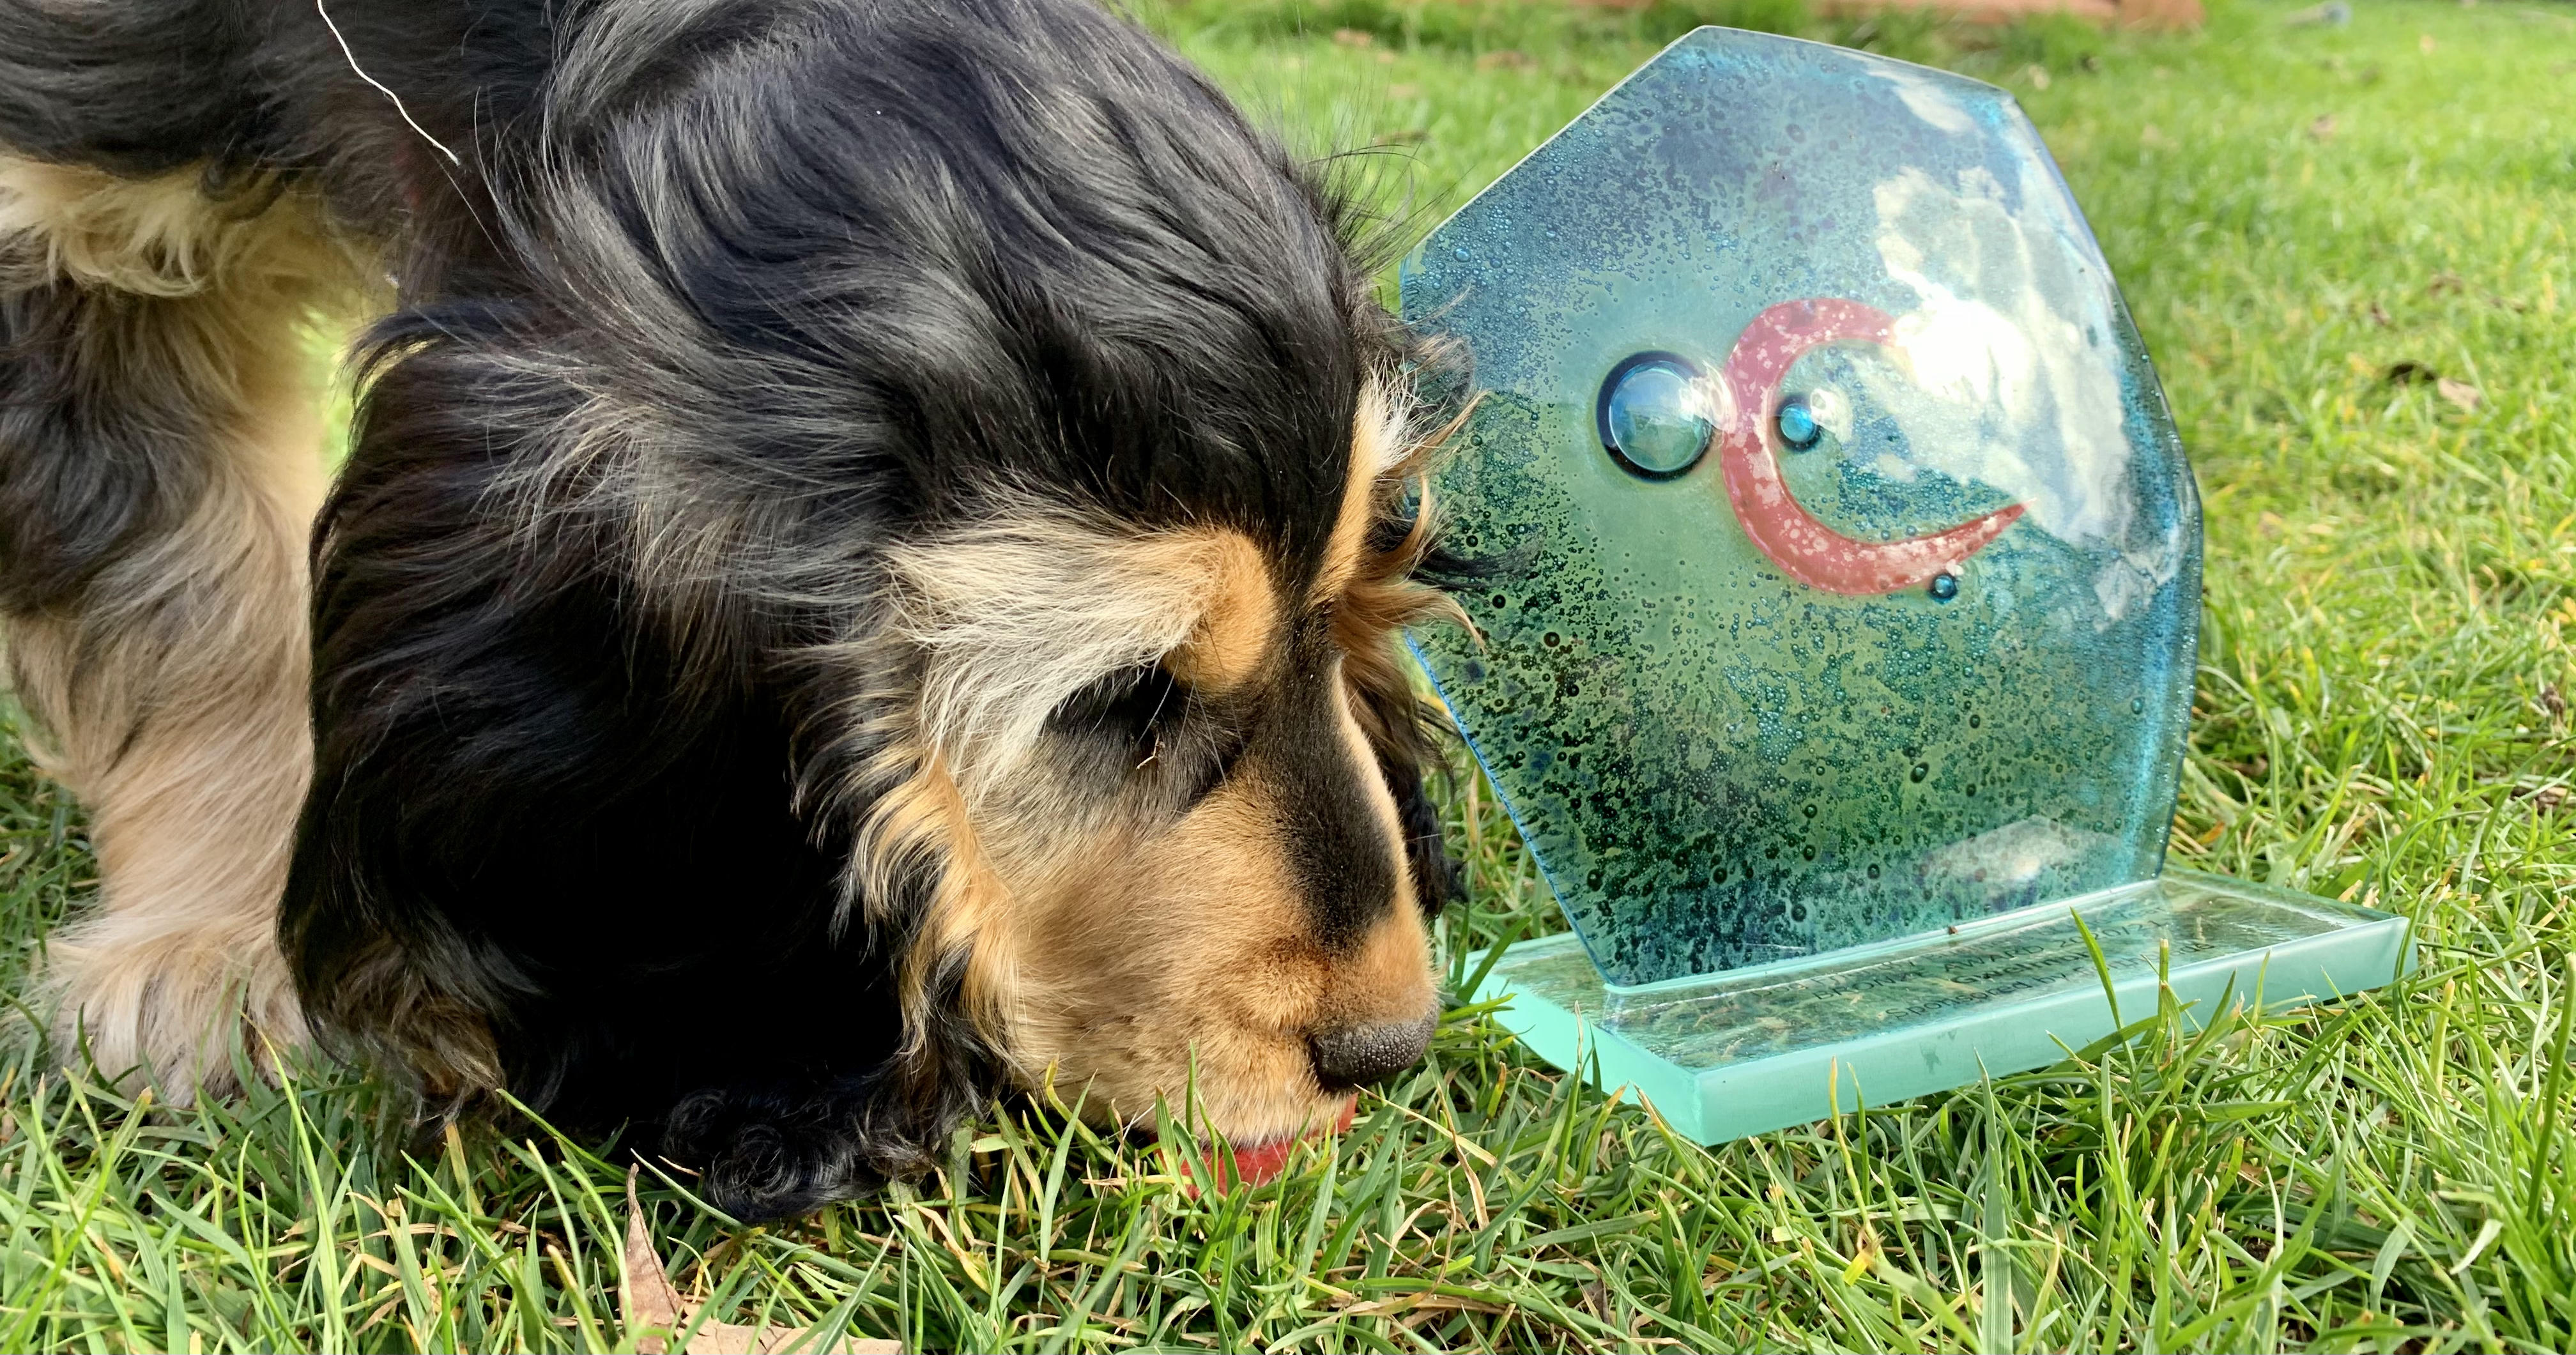 Margo shows off Gwelmor's Bronze award for 'Dog Friendly Business of the Year' in the Cornwall Tourism Awards 2020/21